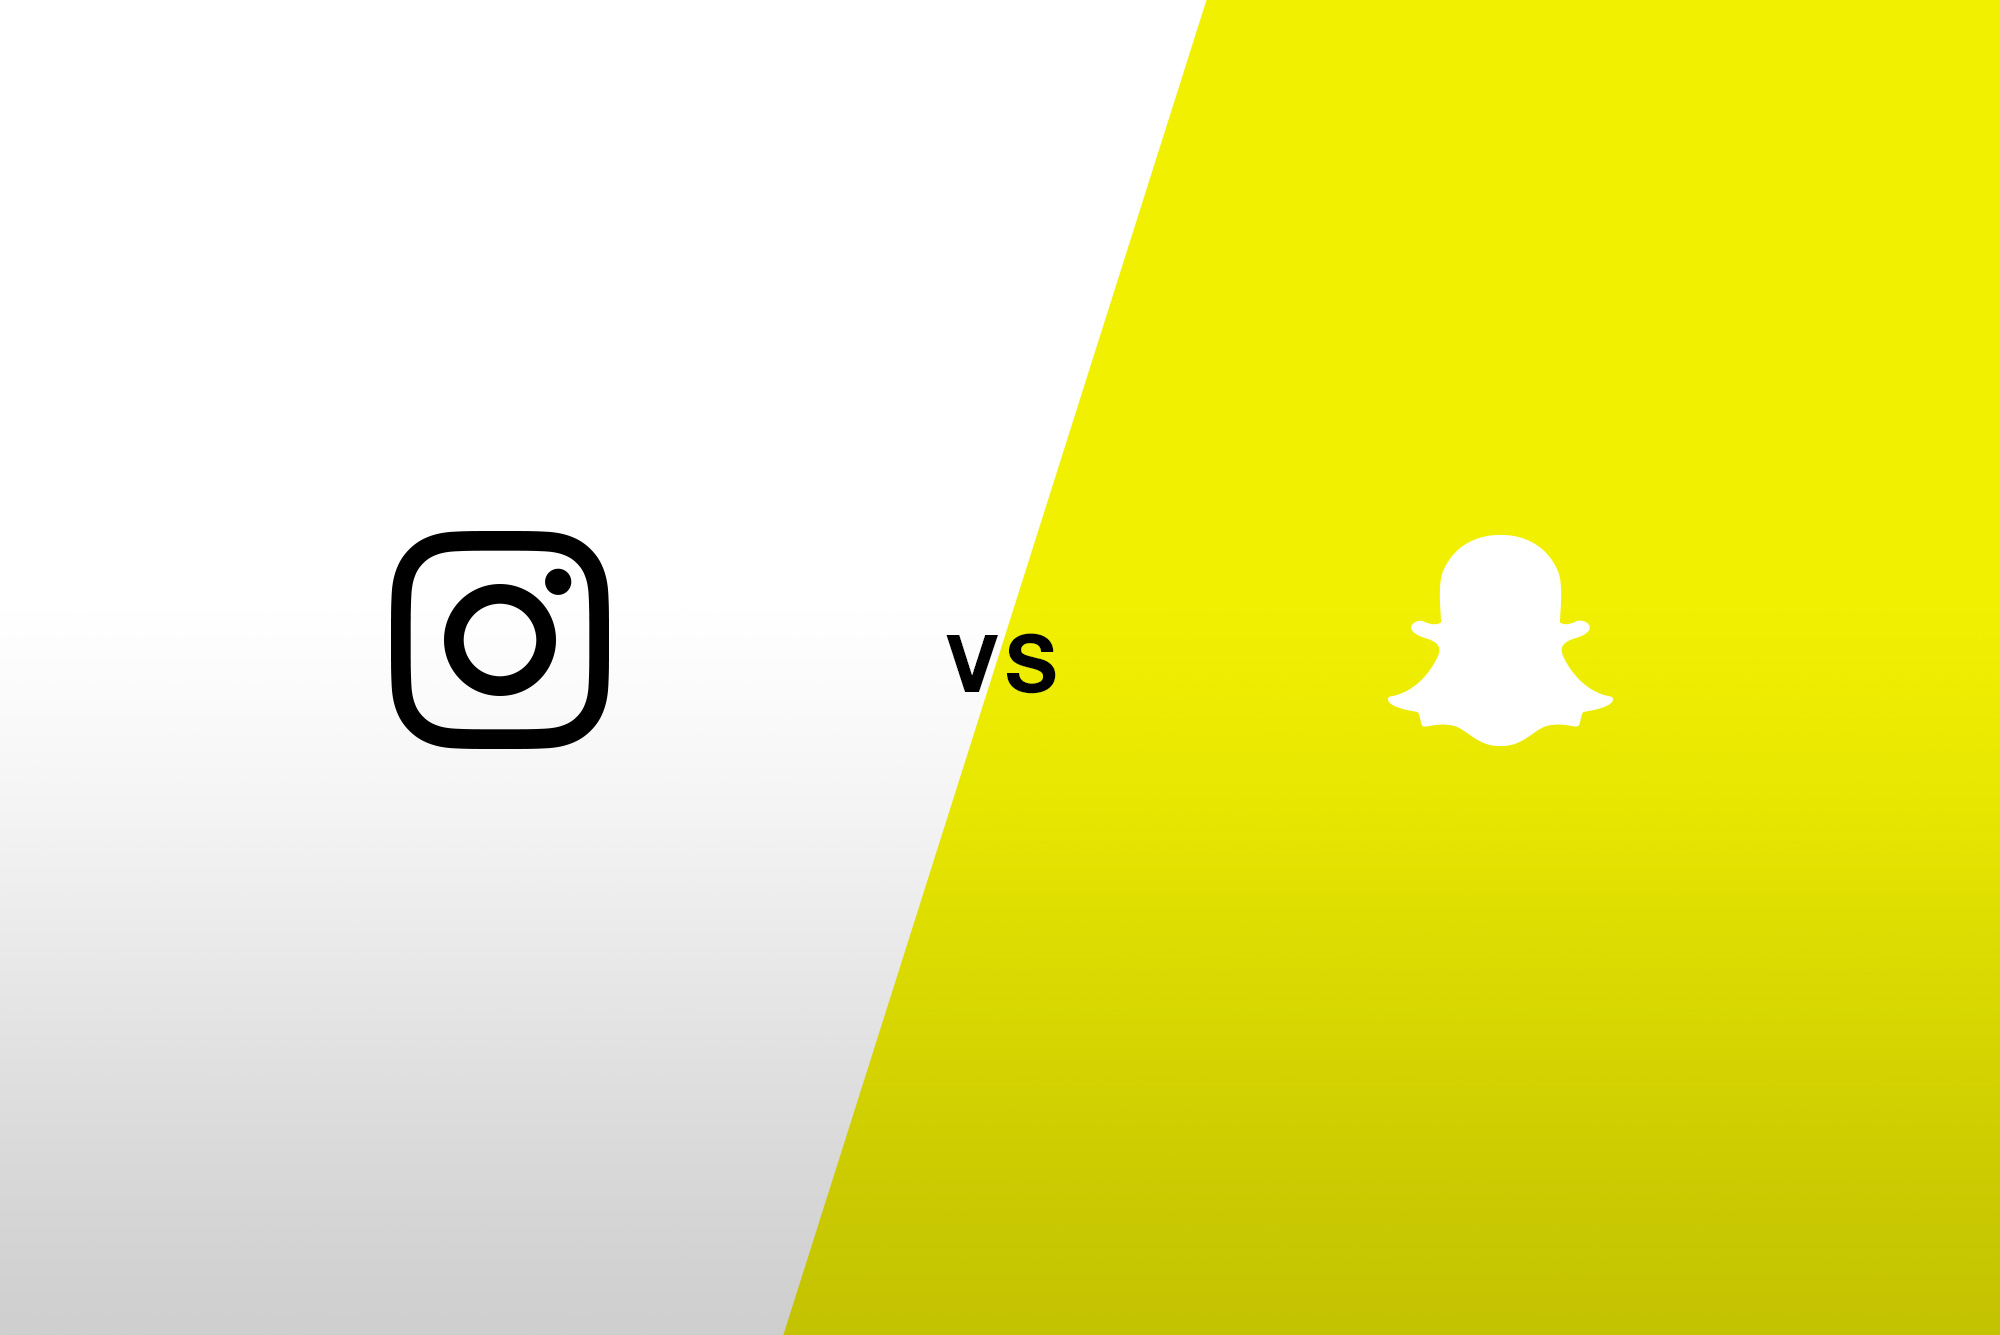 Instagram logo in black vs Snapchat logo in white. Half white, half yellow background